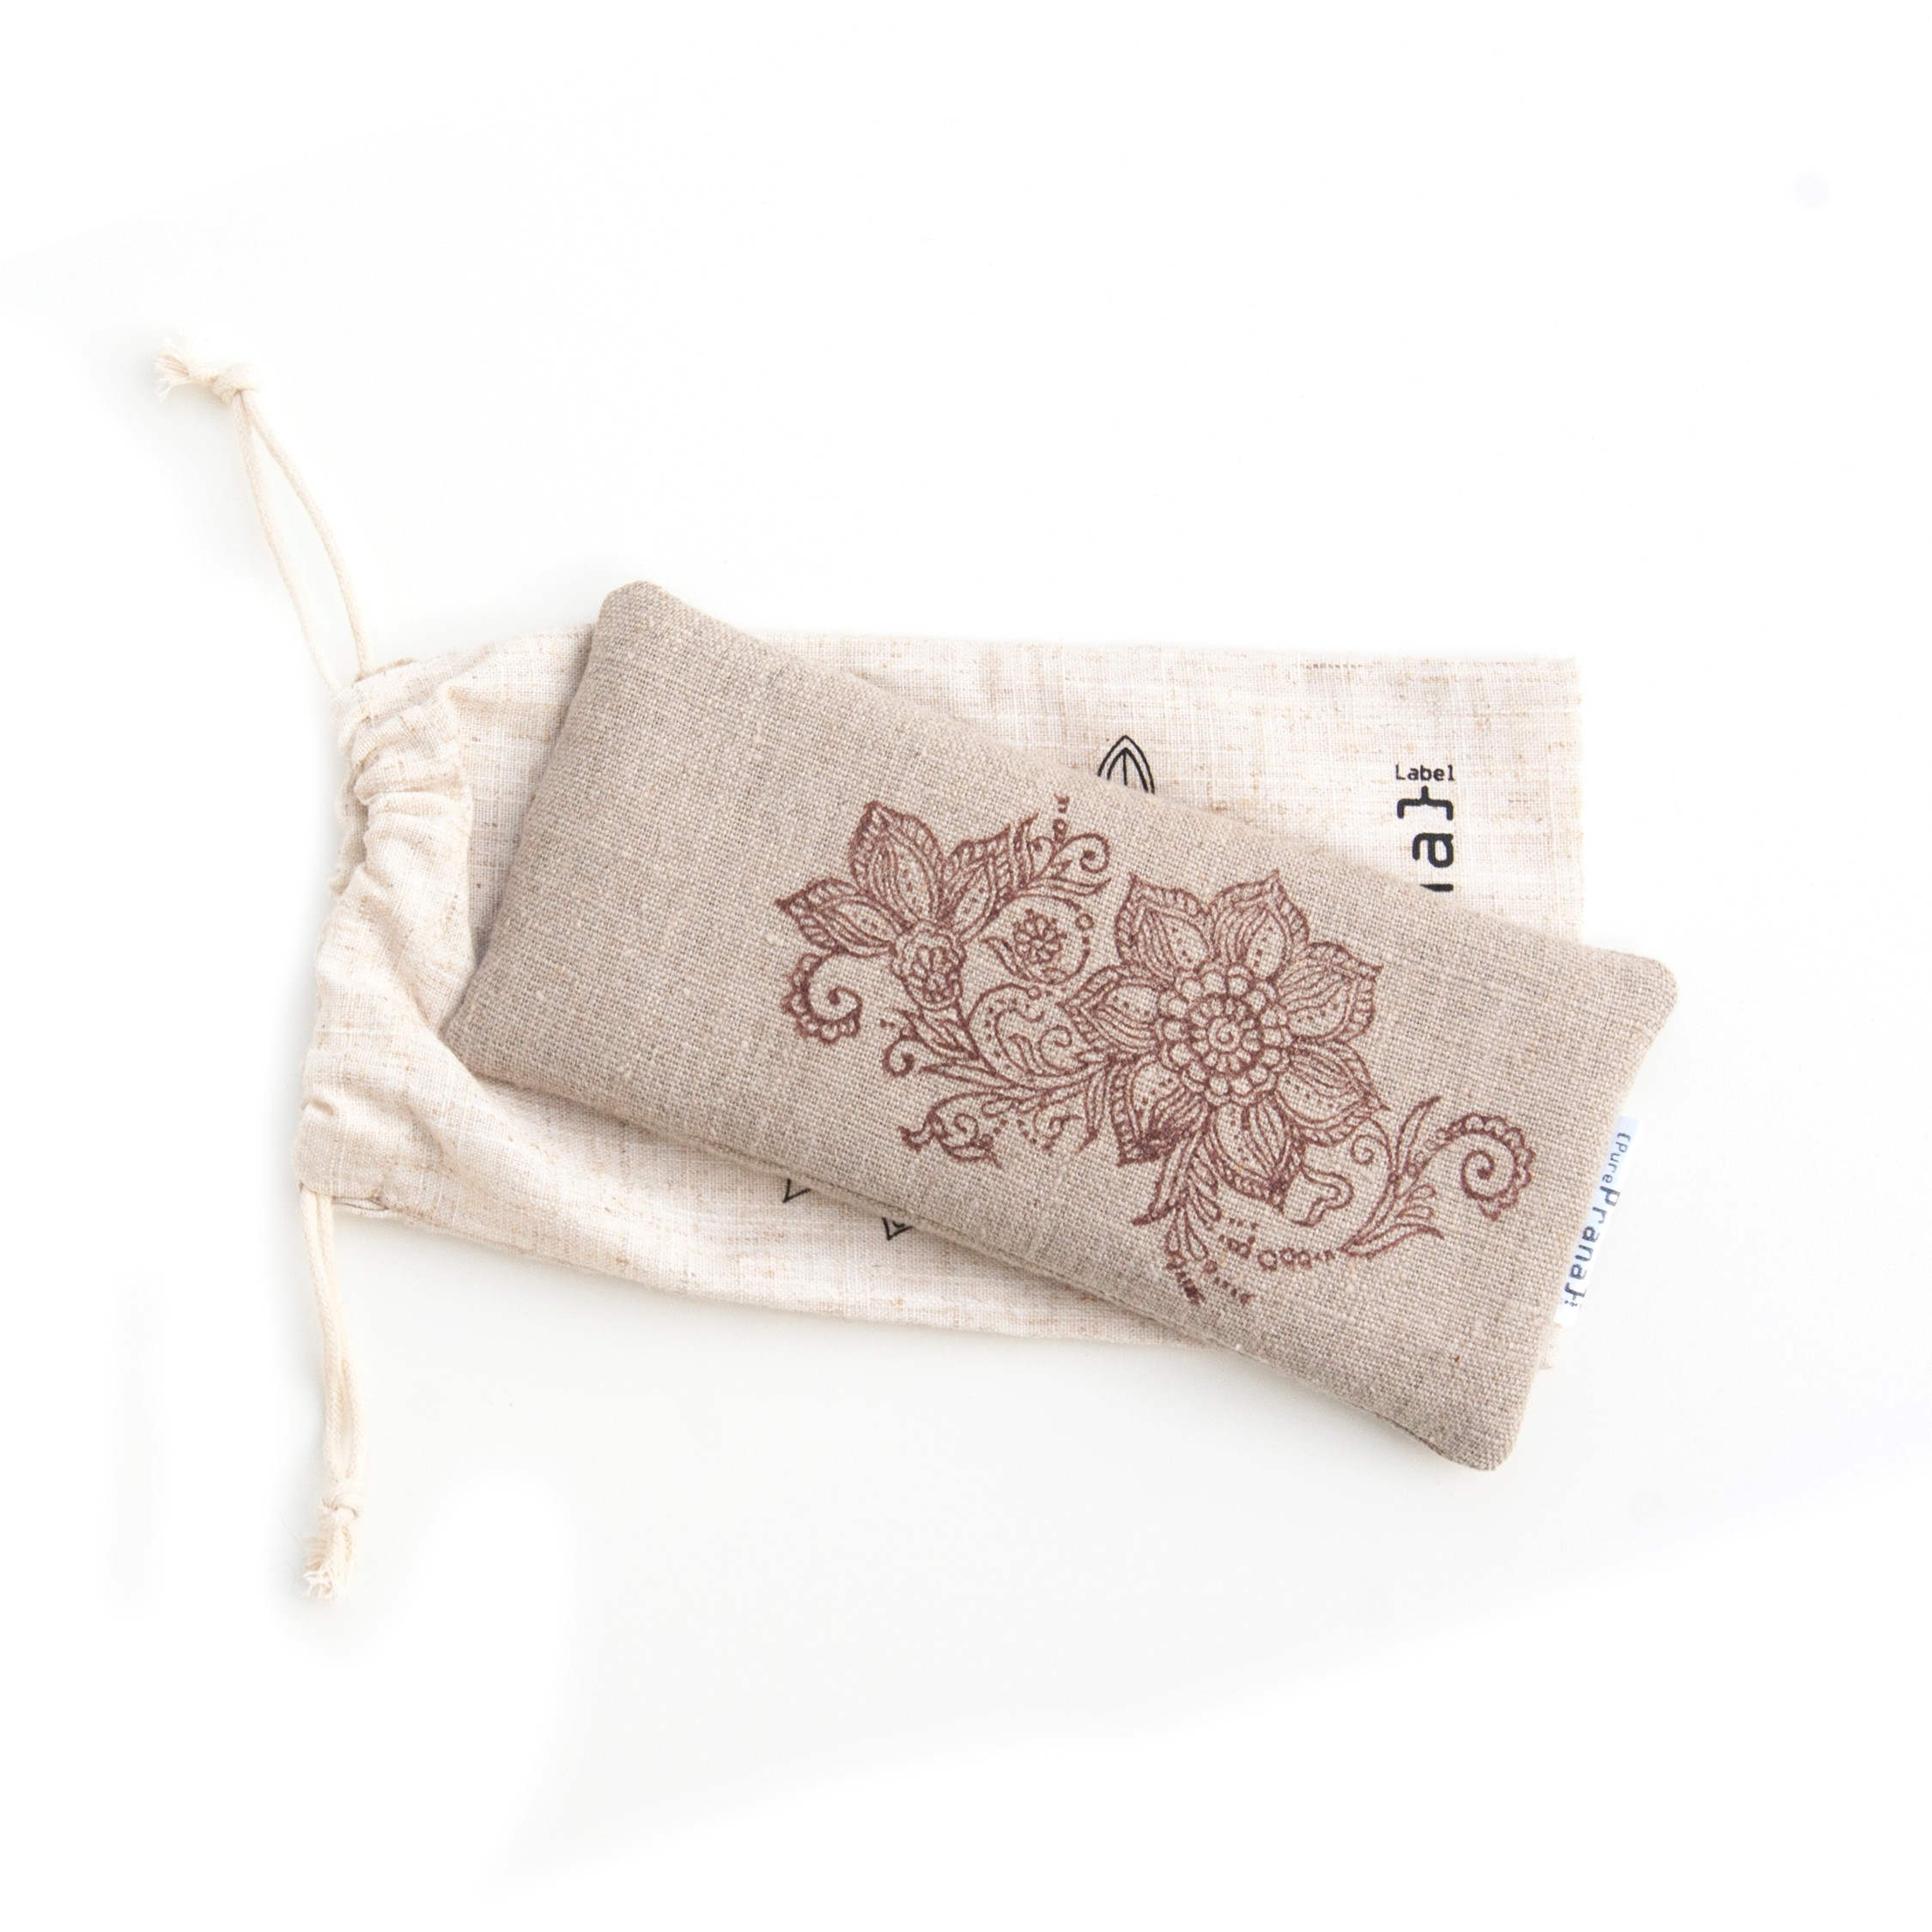 Yoga eye pillow non toxic